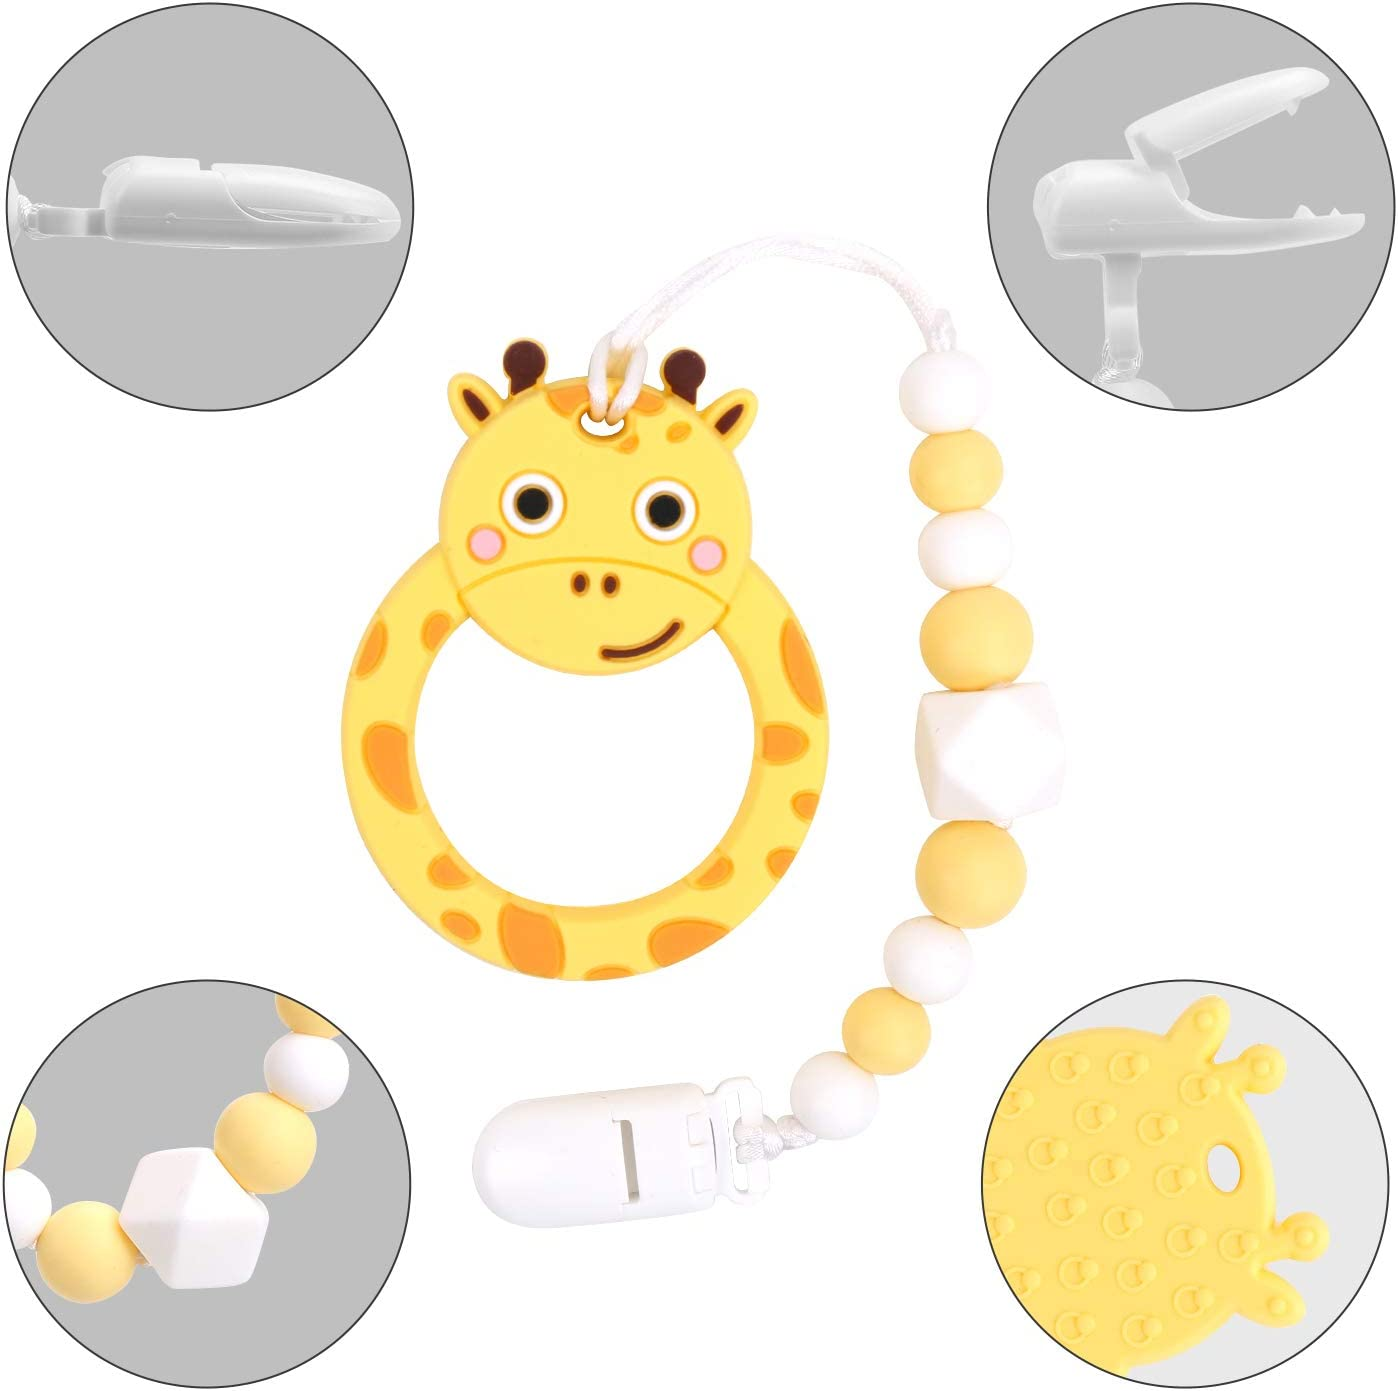 Giraffe-Yellow Flantor Baby Teether Silicone Teether Toy with Pacifier Clip Holder Set for Newborn Babies,Food Grade BPA Free Silicone Teether for Boy and Girl